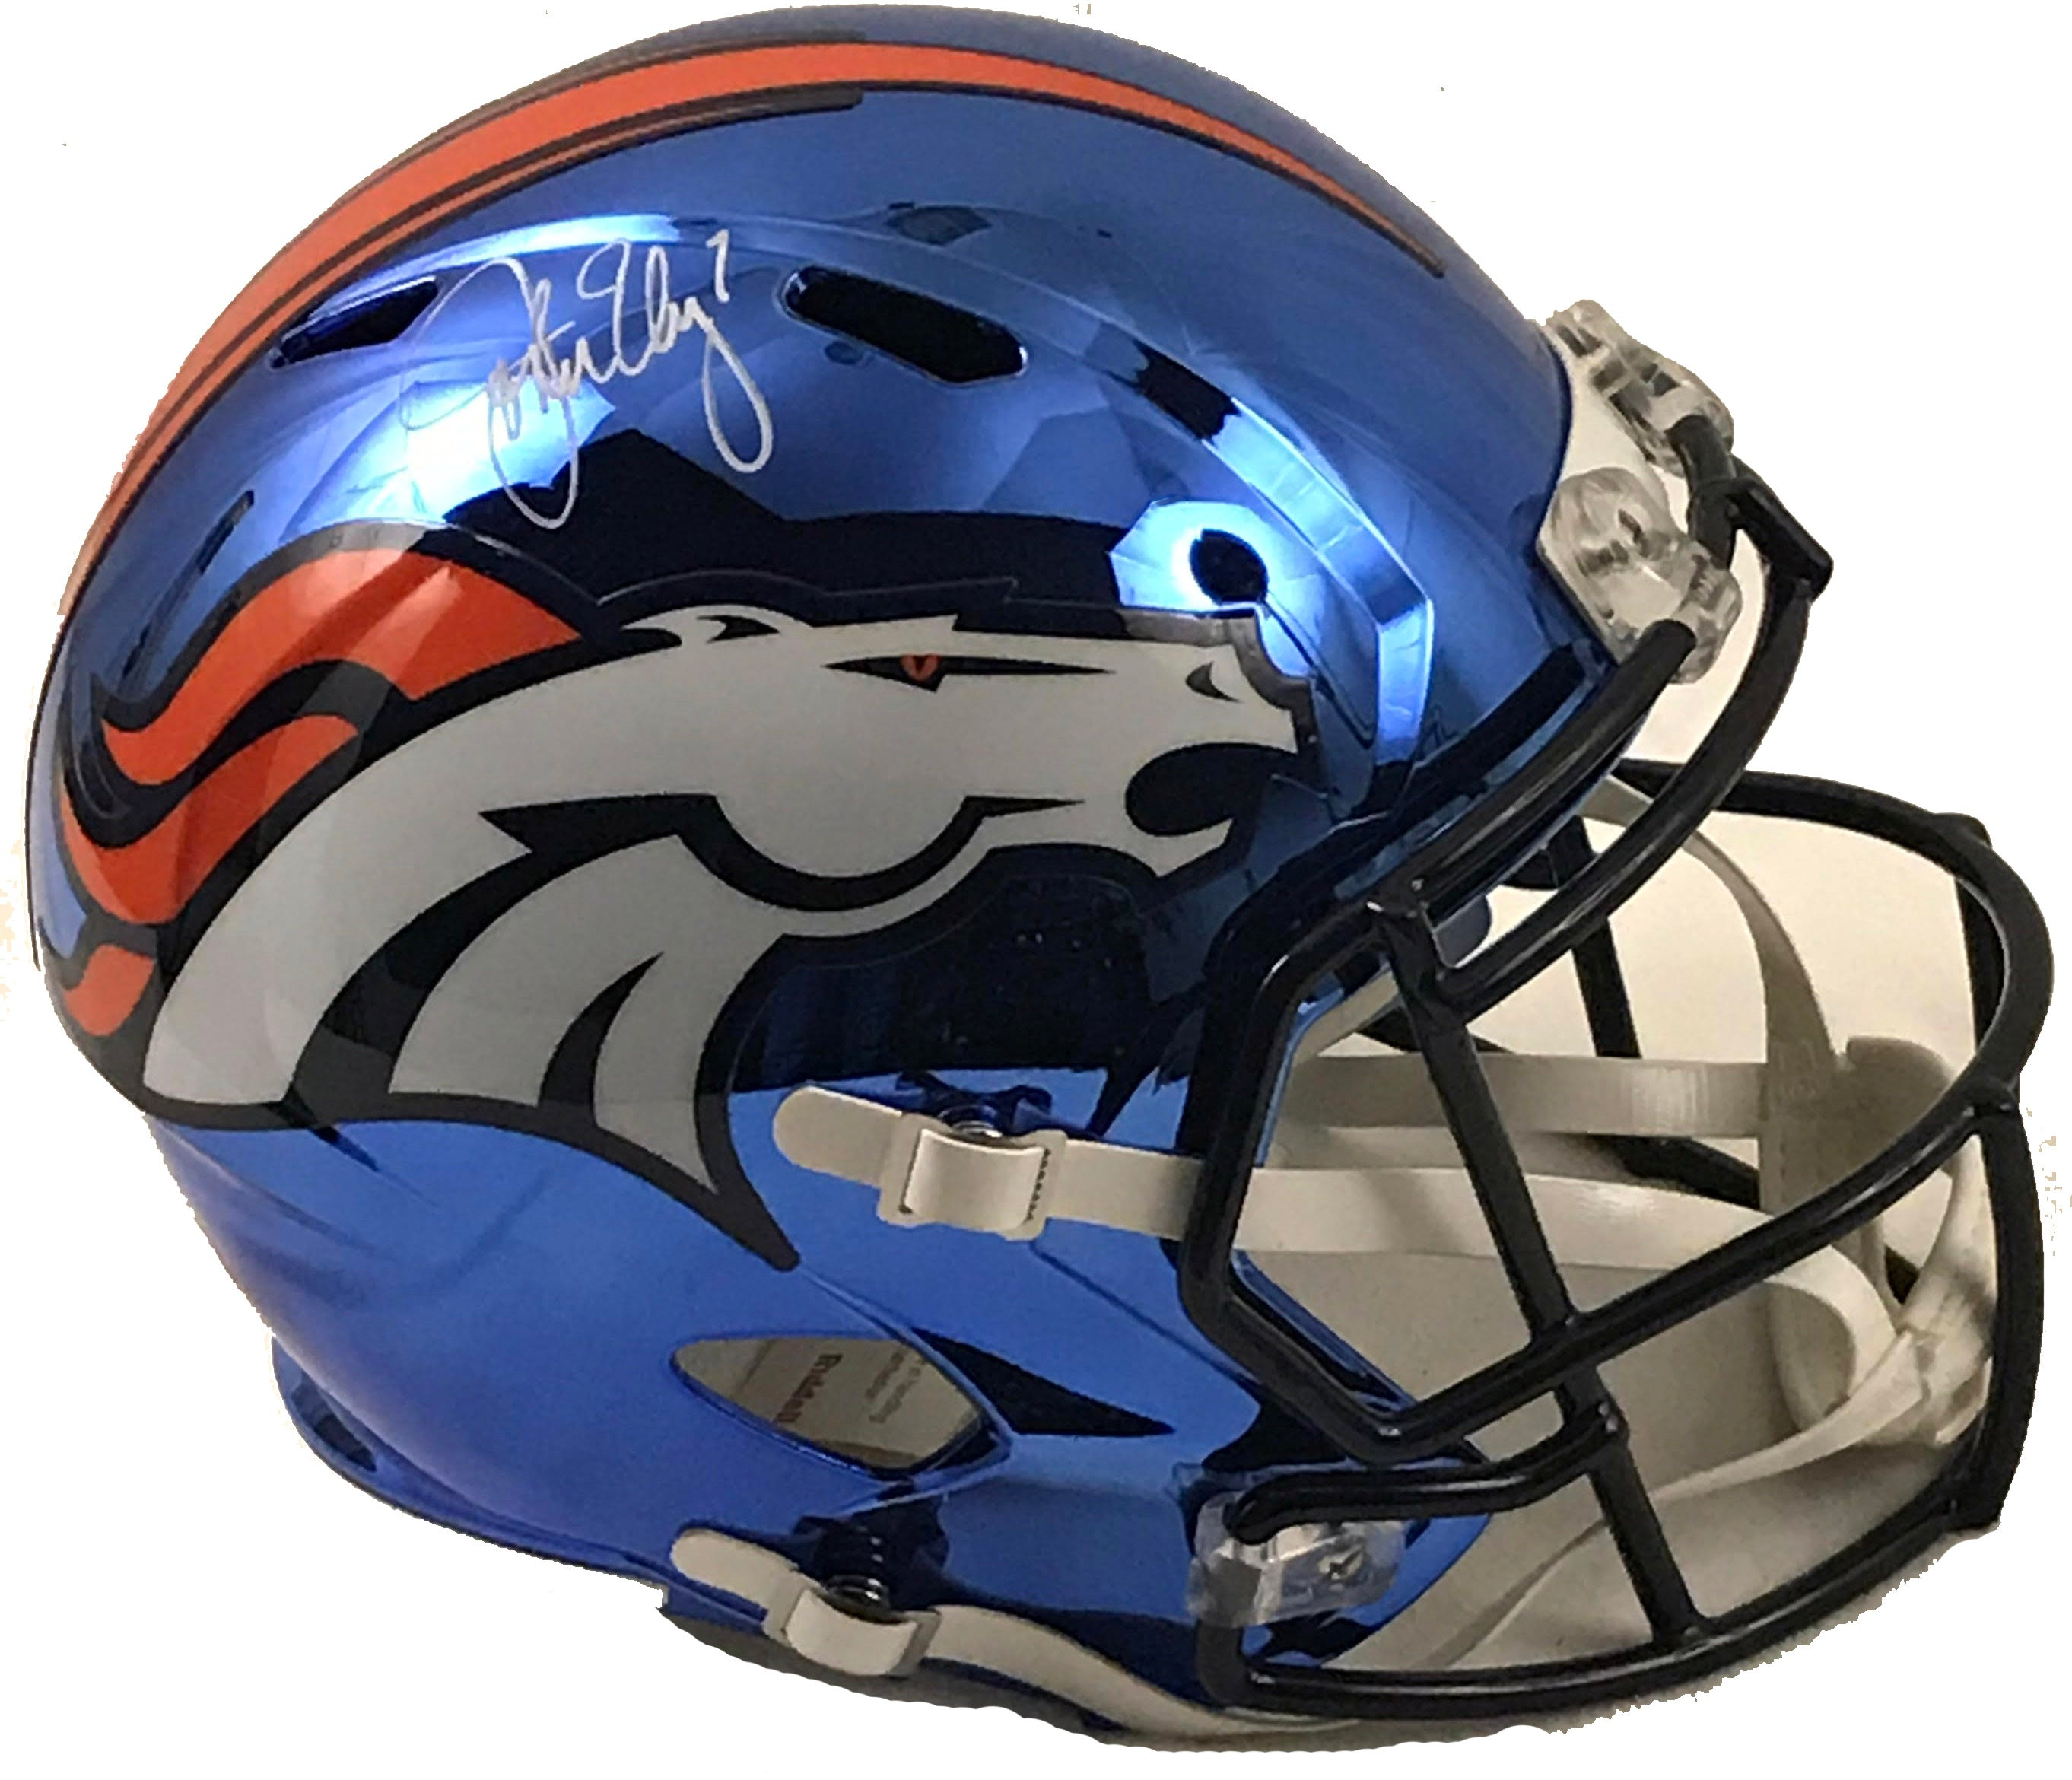 John Elway Signed Denver Broncos Chrome Helmet